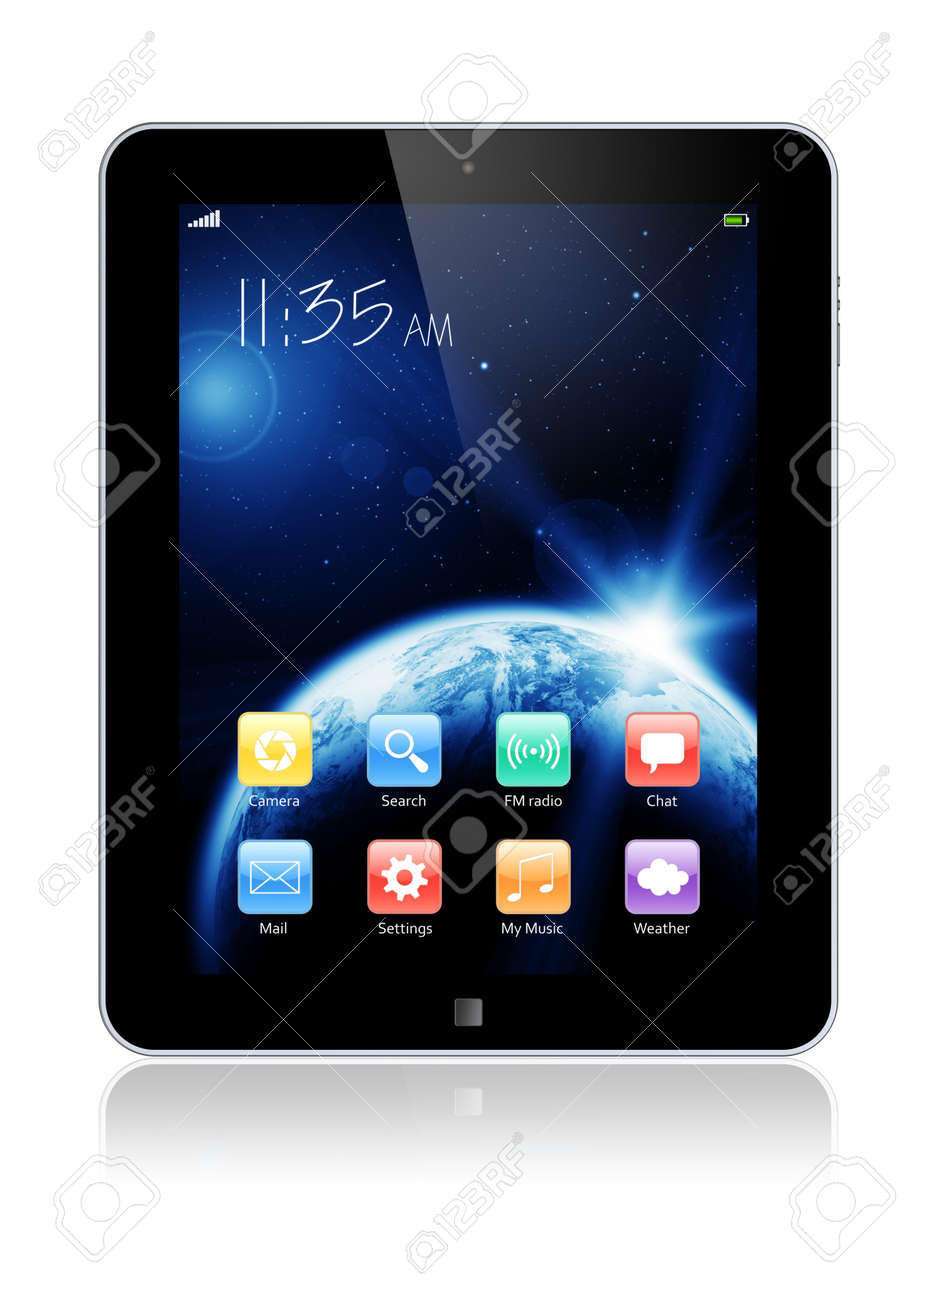 Abstract tablet PC with space dawn wallpaper and colorful apps